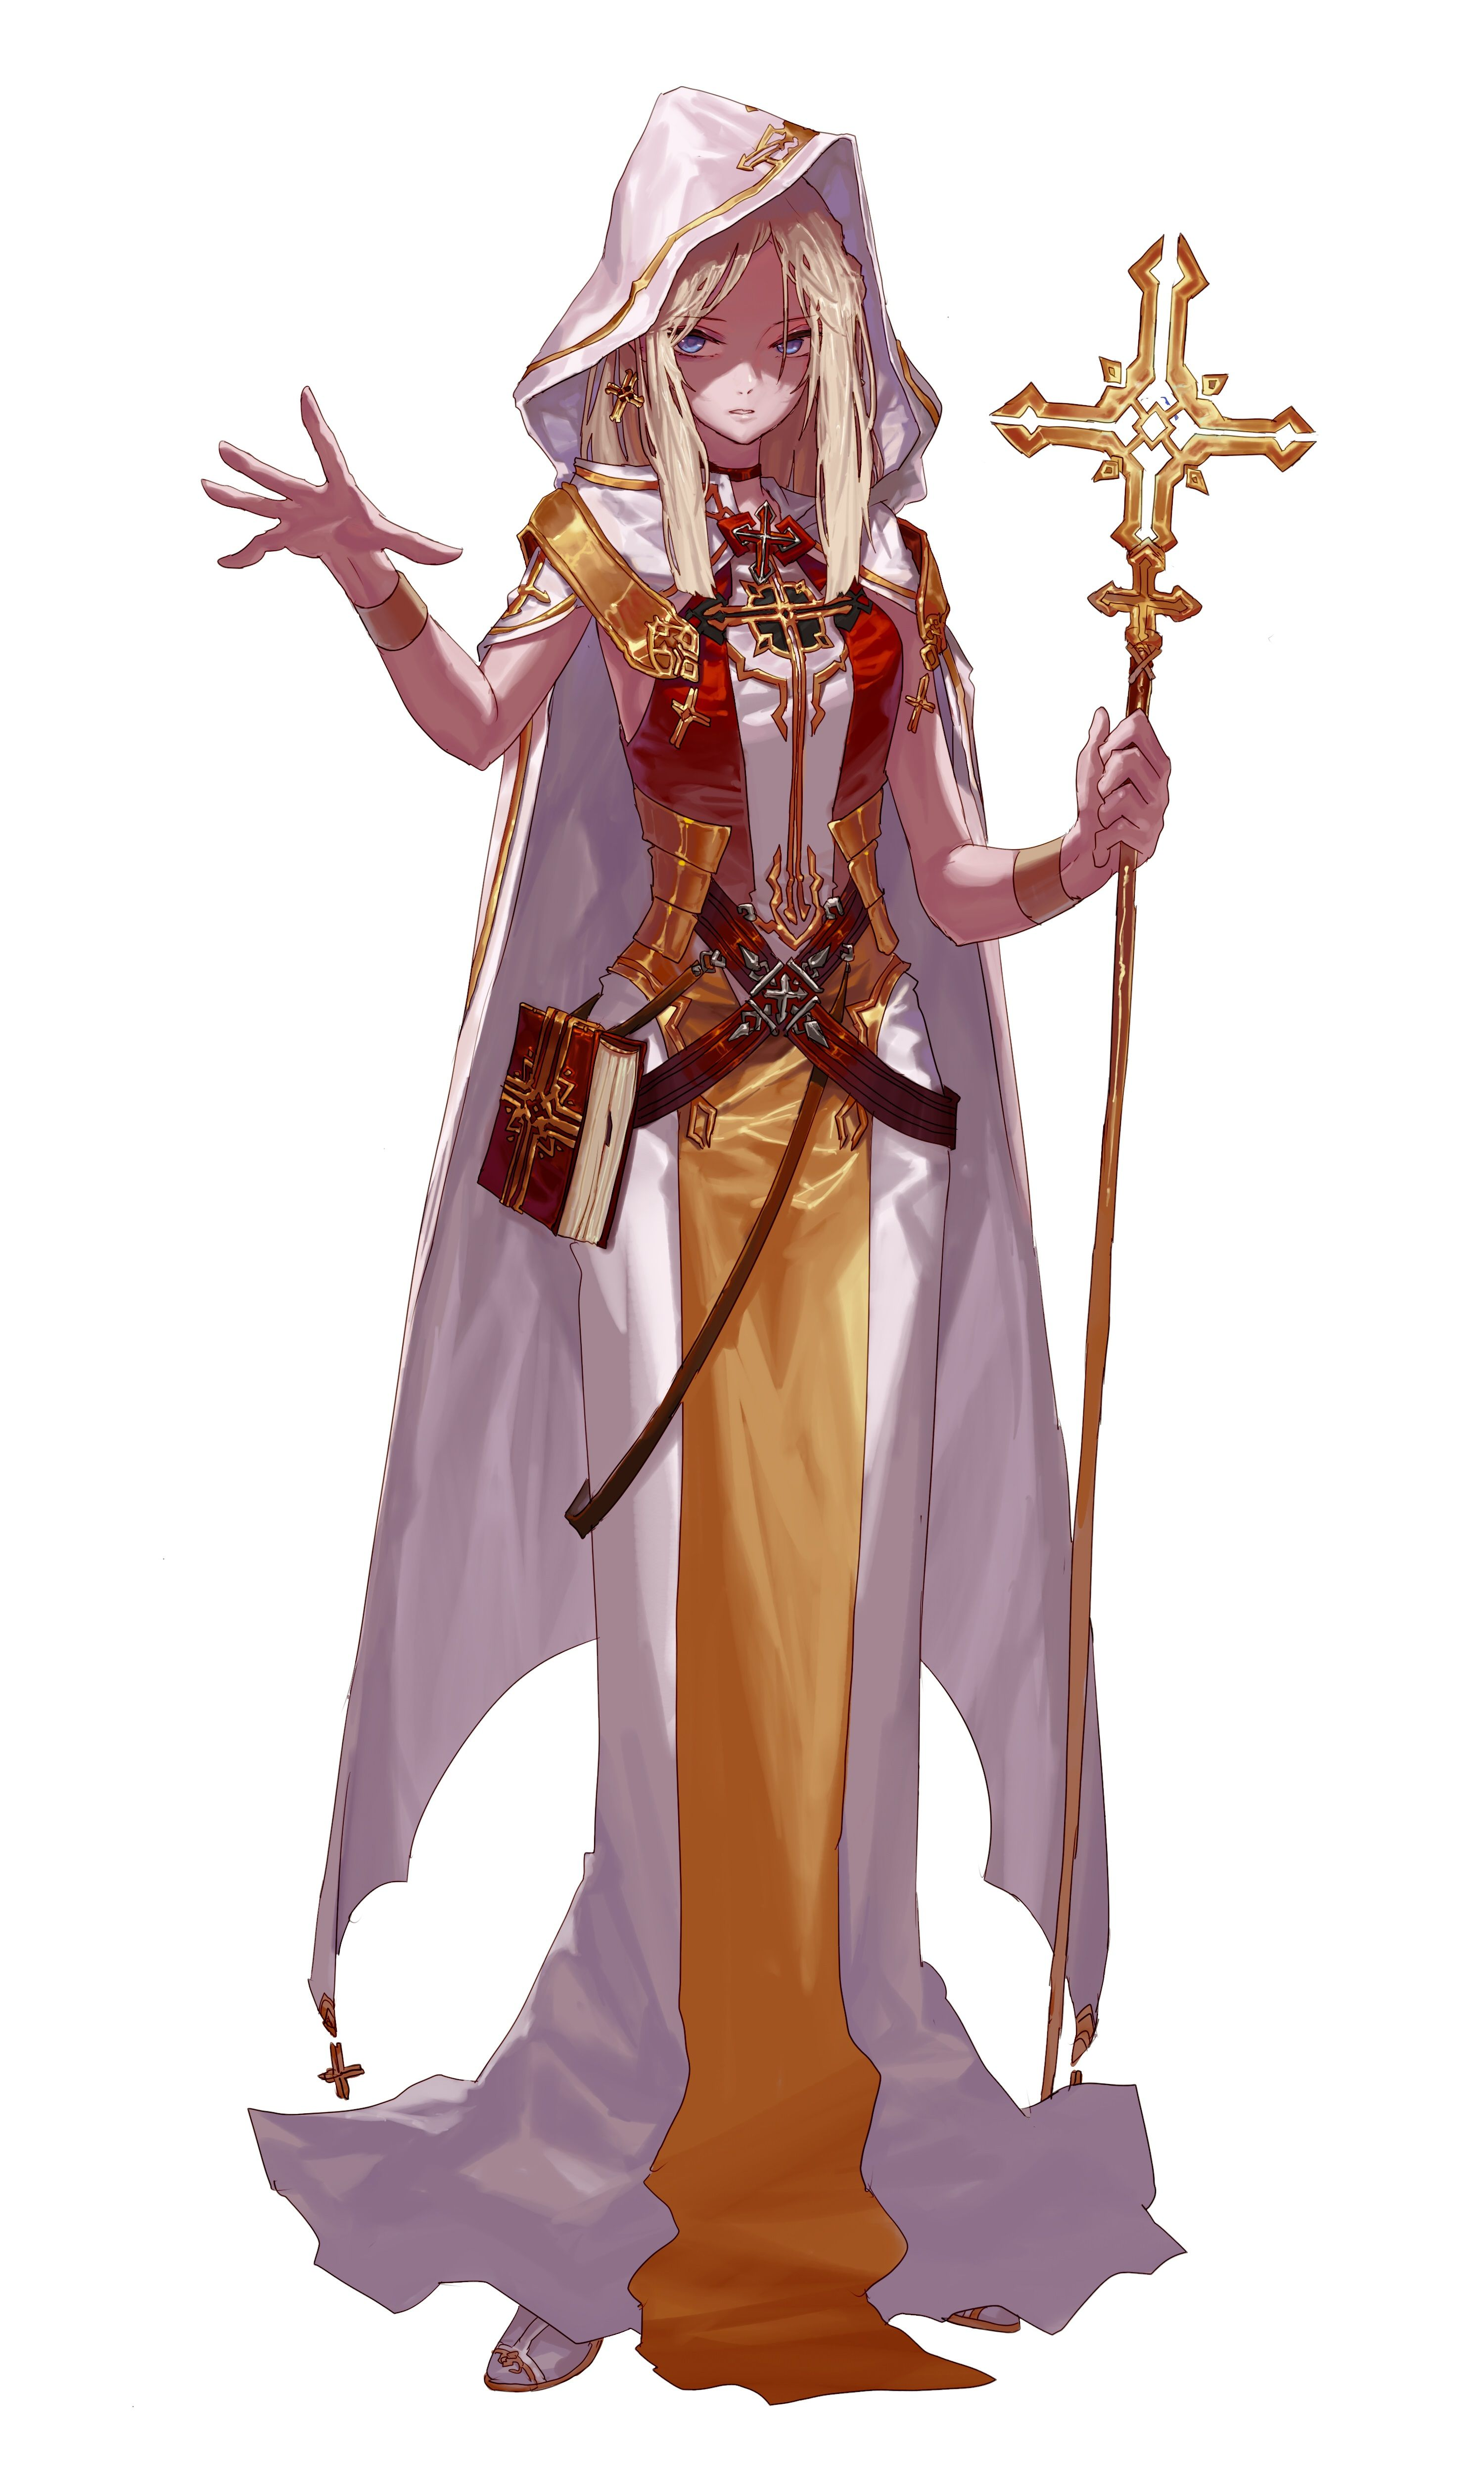 Pin By Linda Thach On Cosplay In 2019 Character Design Fantasy